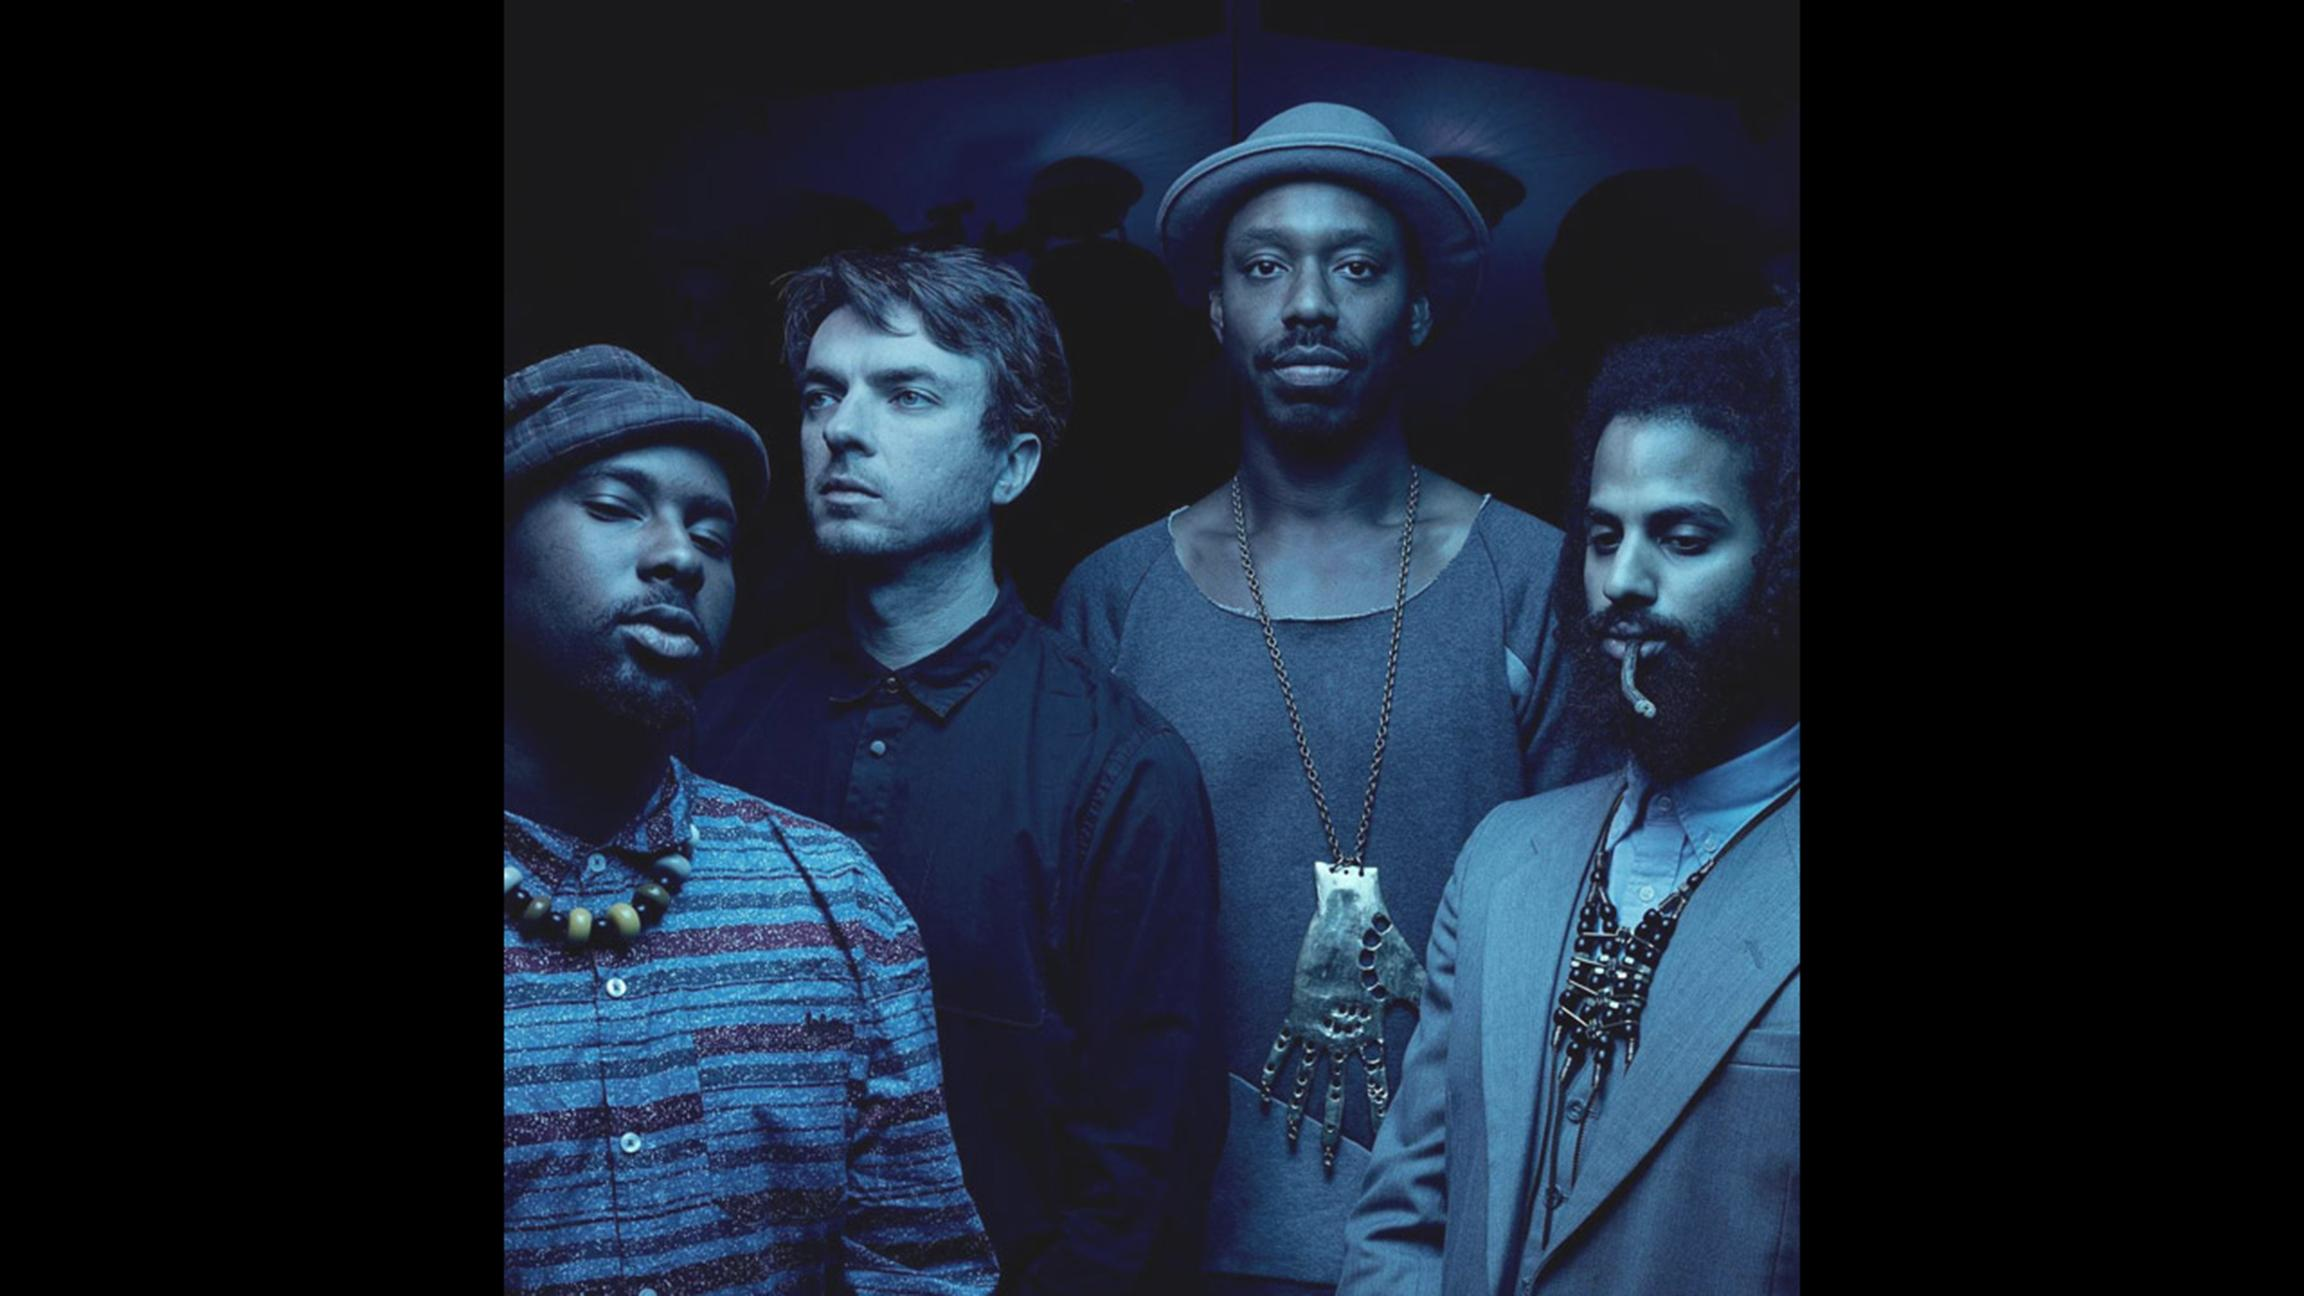 Sons of Kemet performs Thursday at Millennium Park (Courtesy City of Chicago)